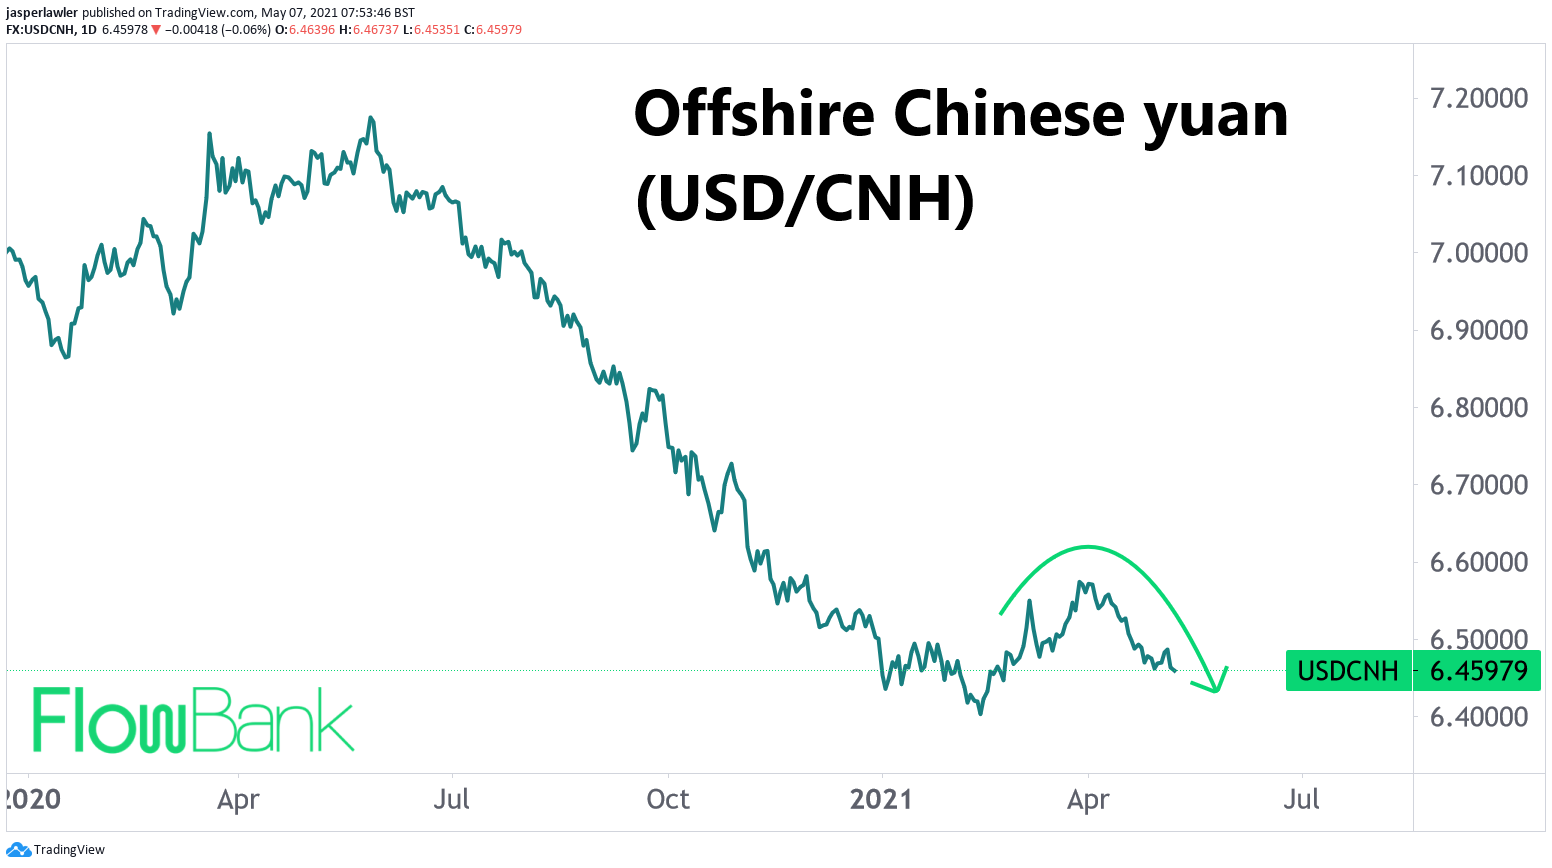 Offshore Chinese yuan back to its highest in over 2 months #USDCNH